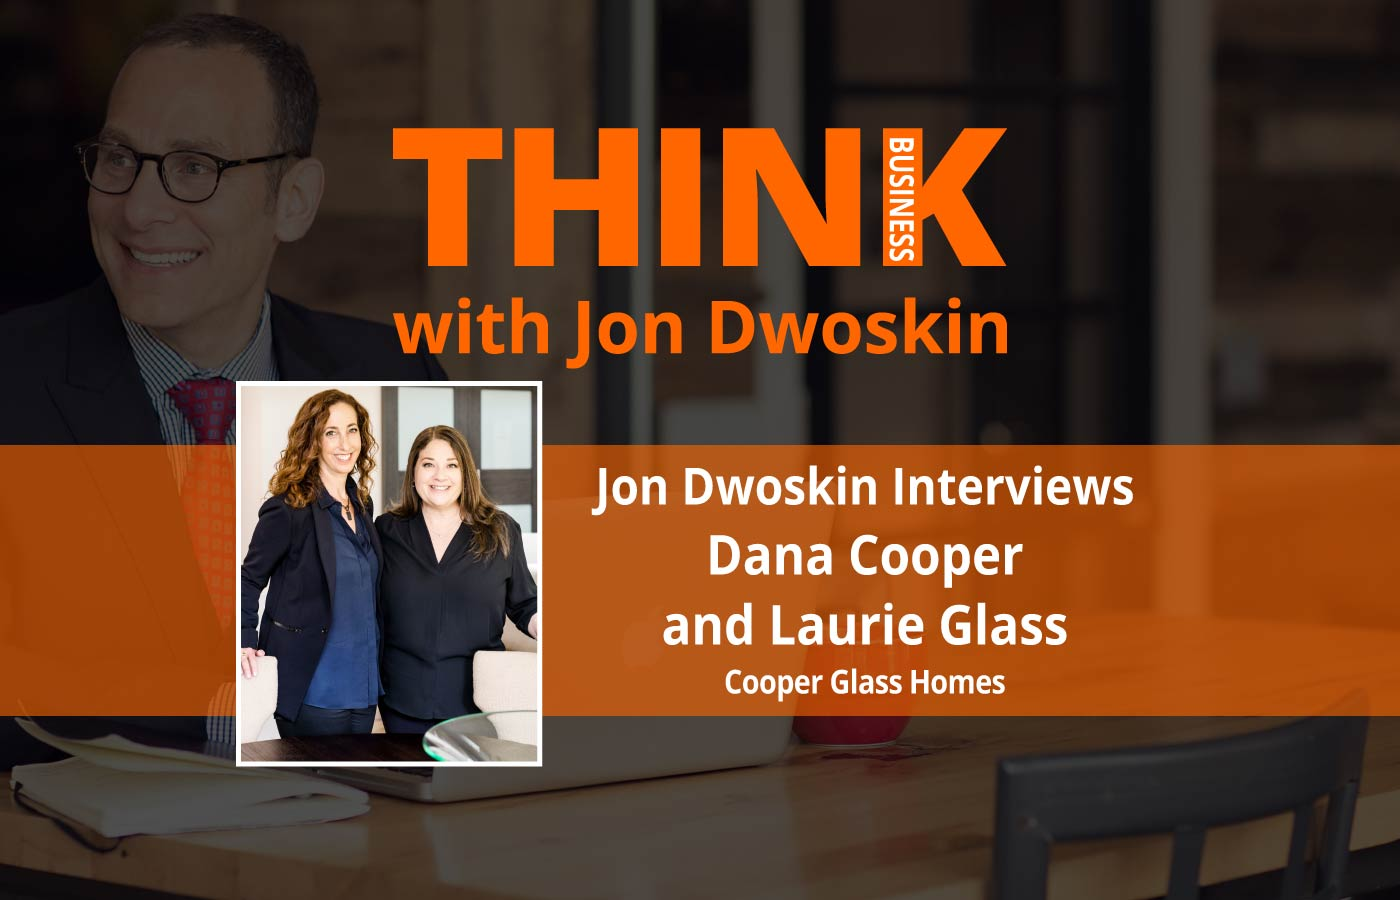 THINK Business Podcast: Jon Dwoskin Interviews Dana Cooper and Laurie Glass, Cooper Glass Homes